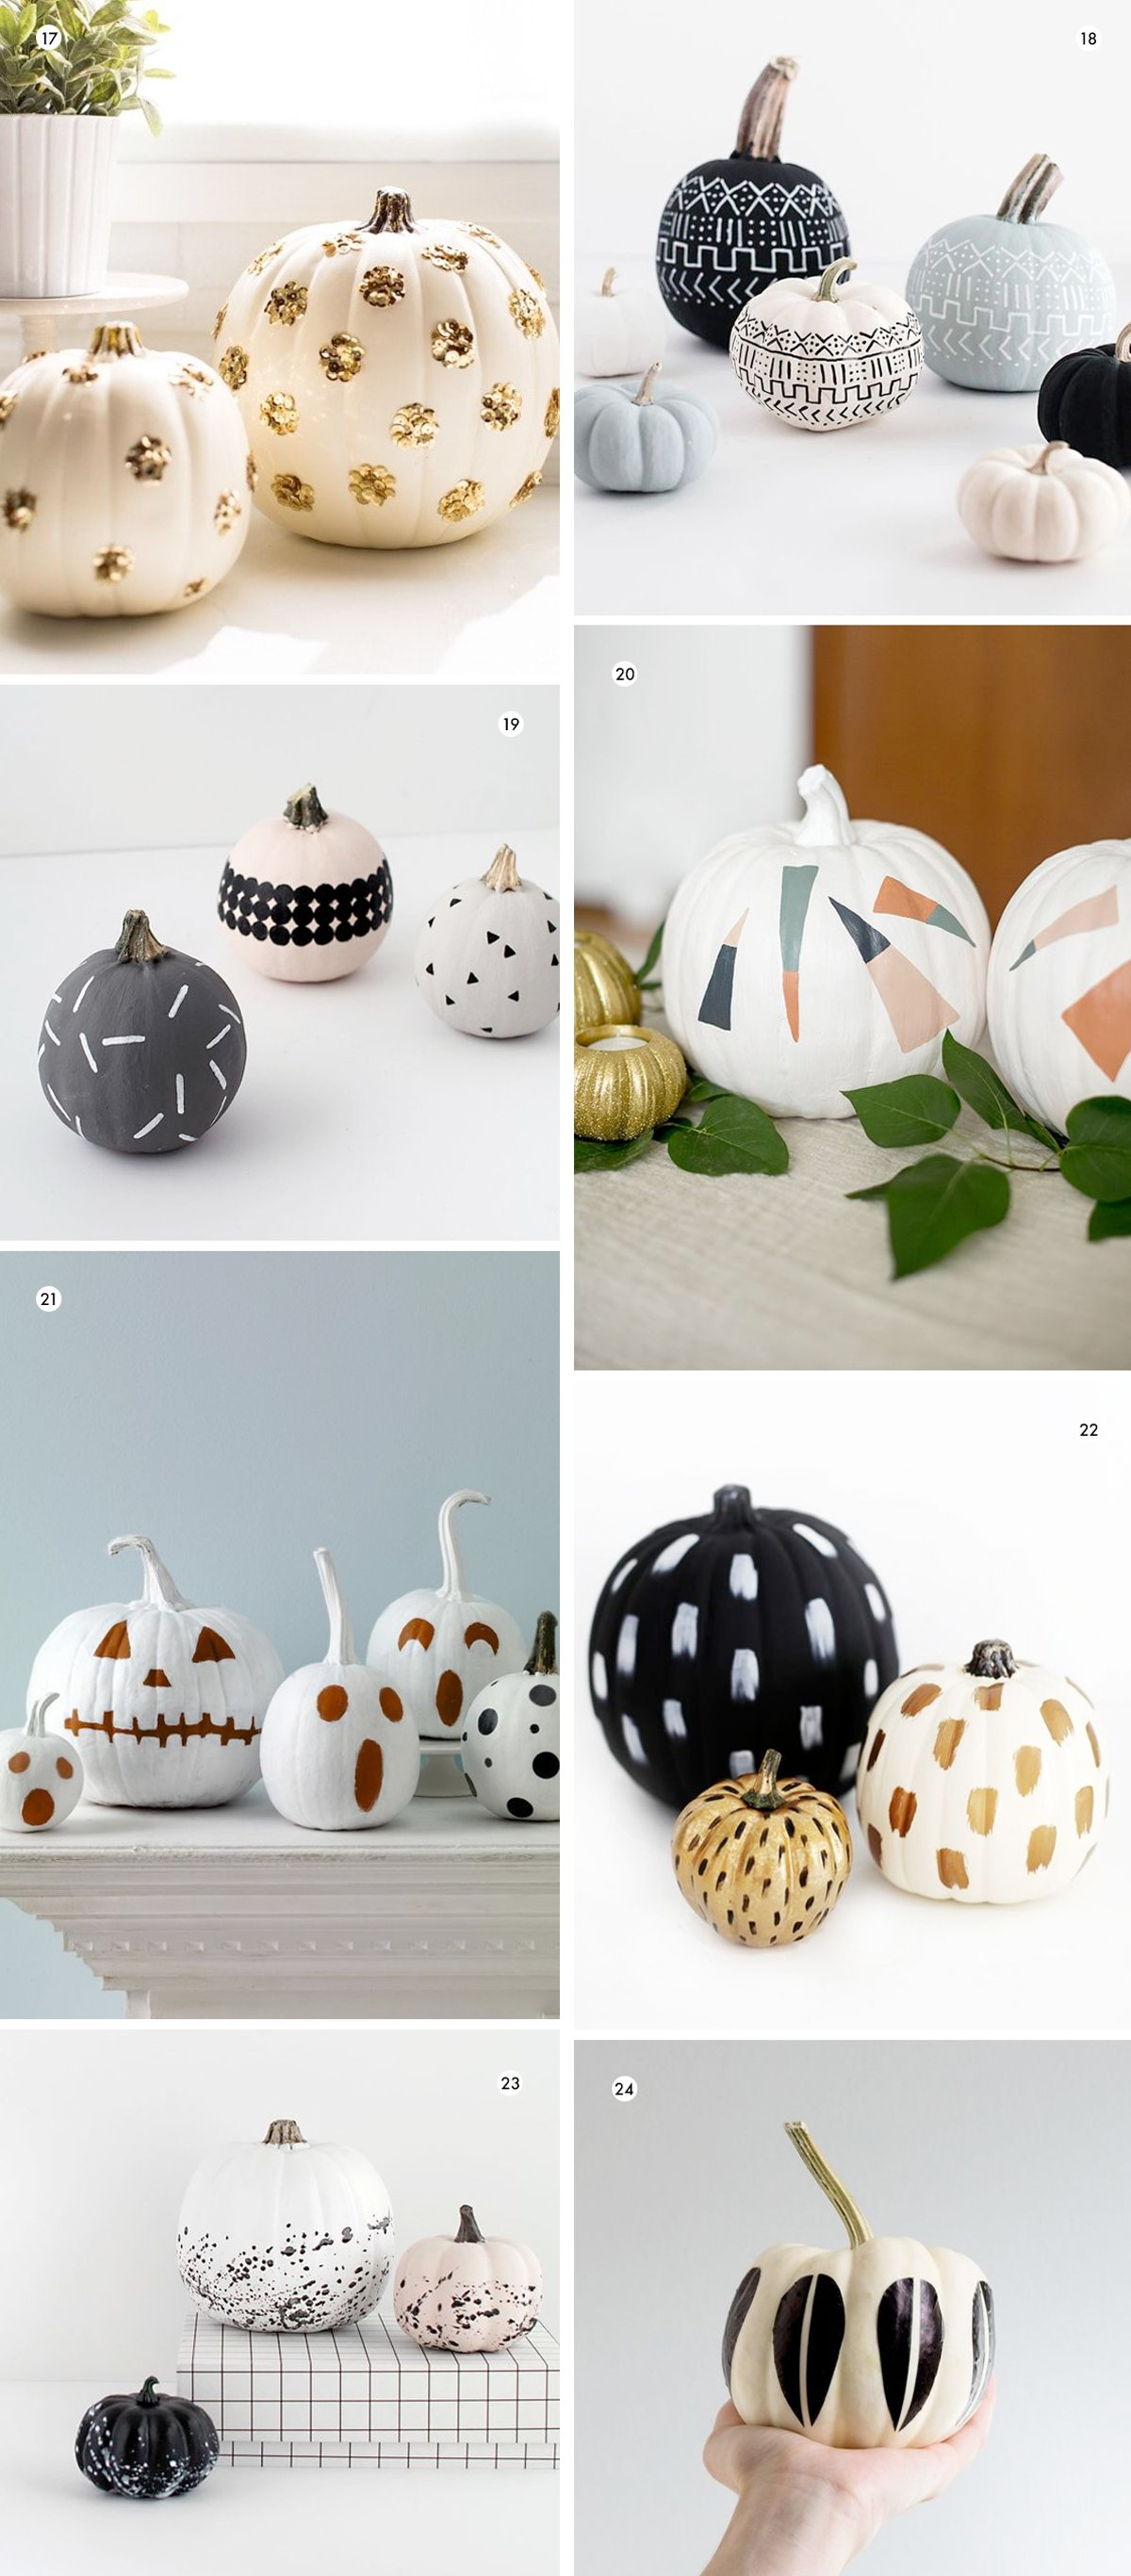 Image of minimal, no-carve pumpkin decorating ideas for Halloween that are unique and modern